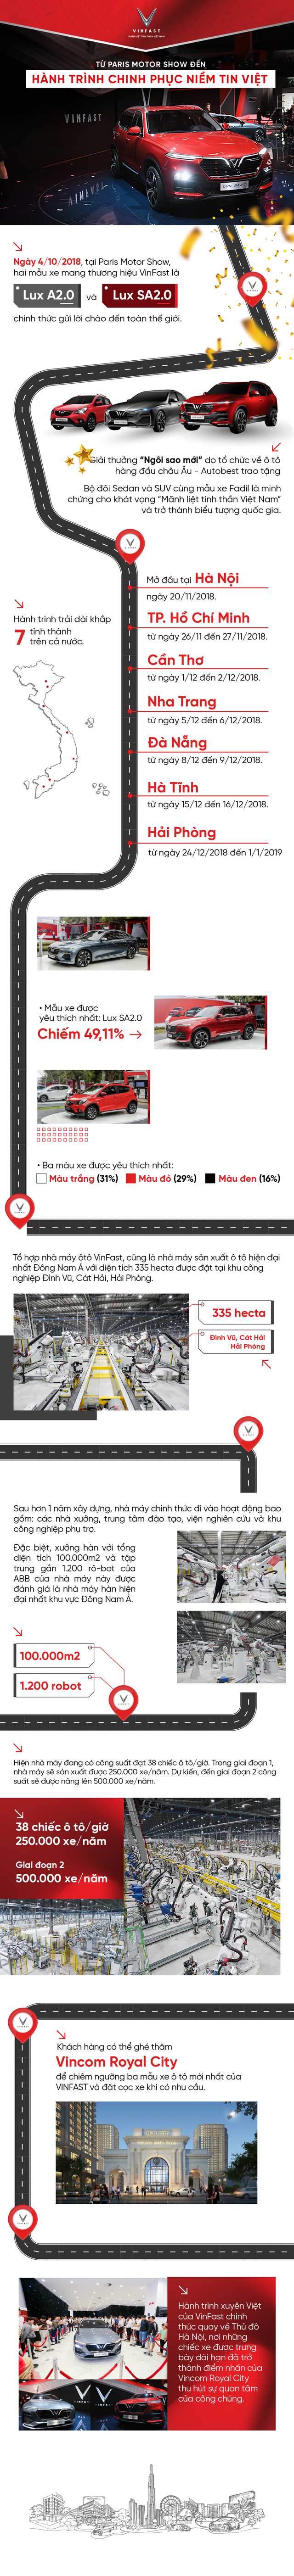 190216_VF_Infographic roadshow xe.png